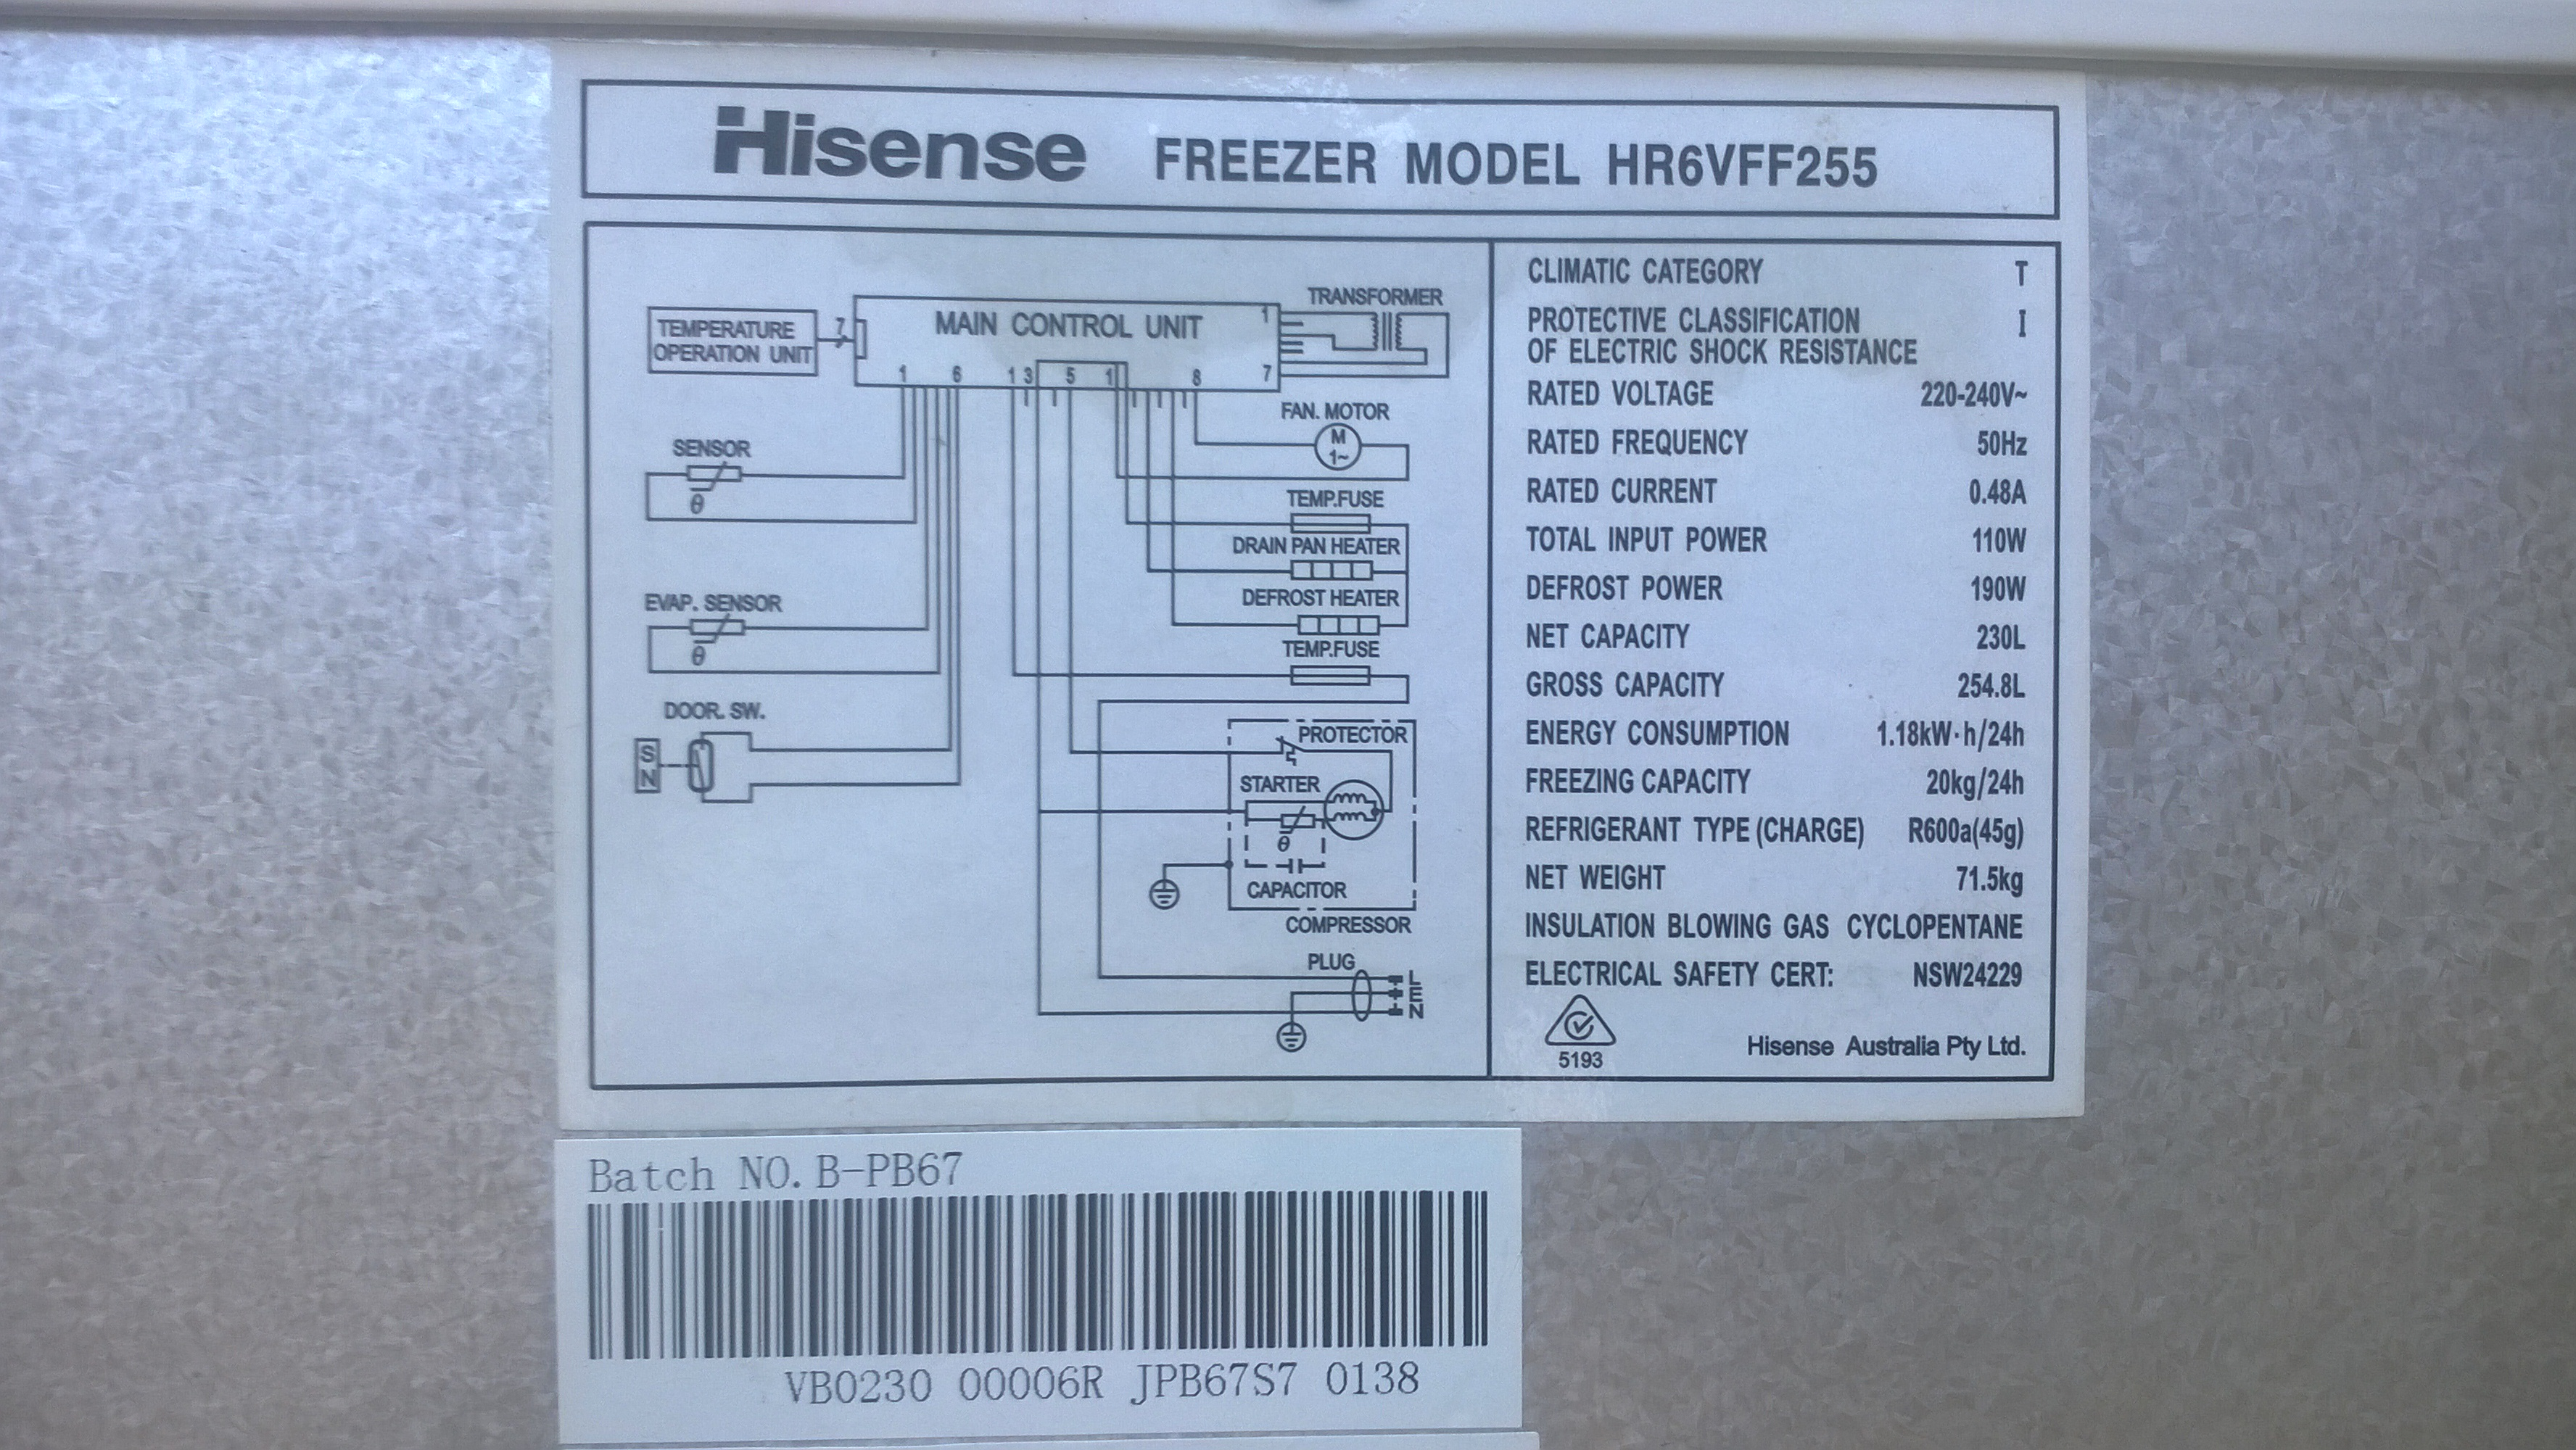 Hisense Freezer Model: HR6VFF255